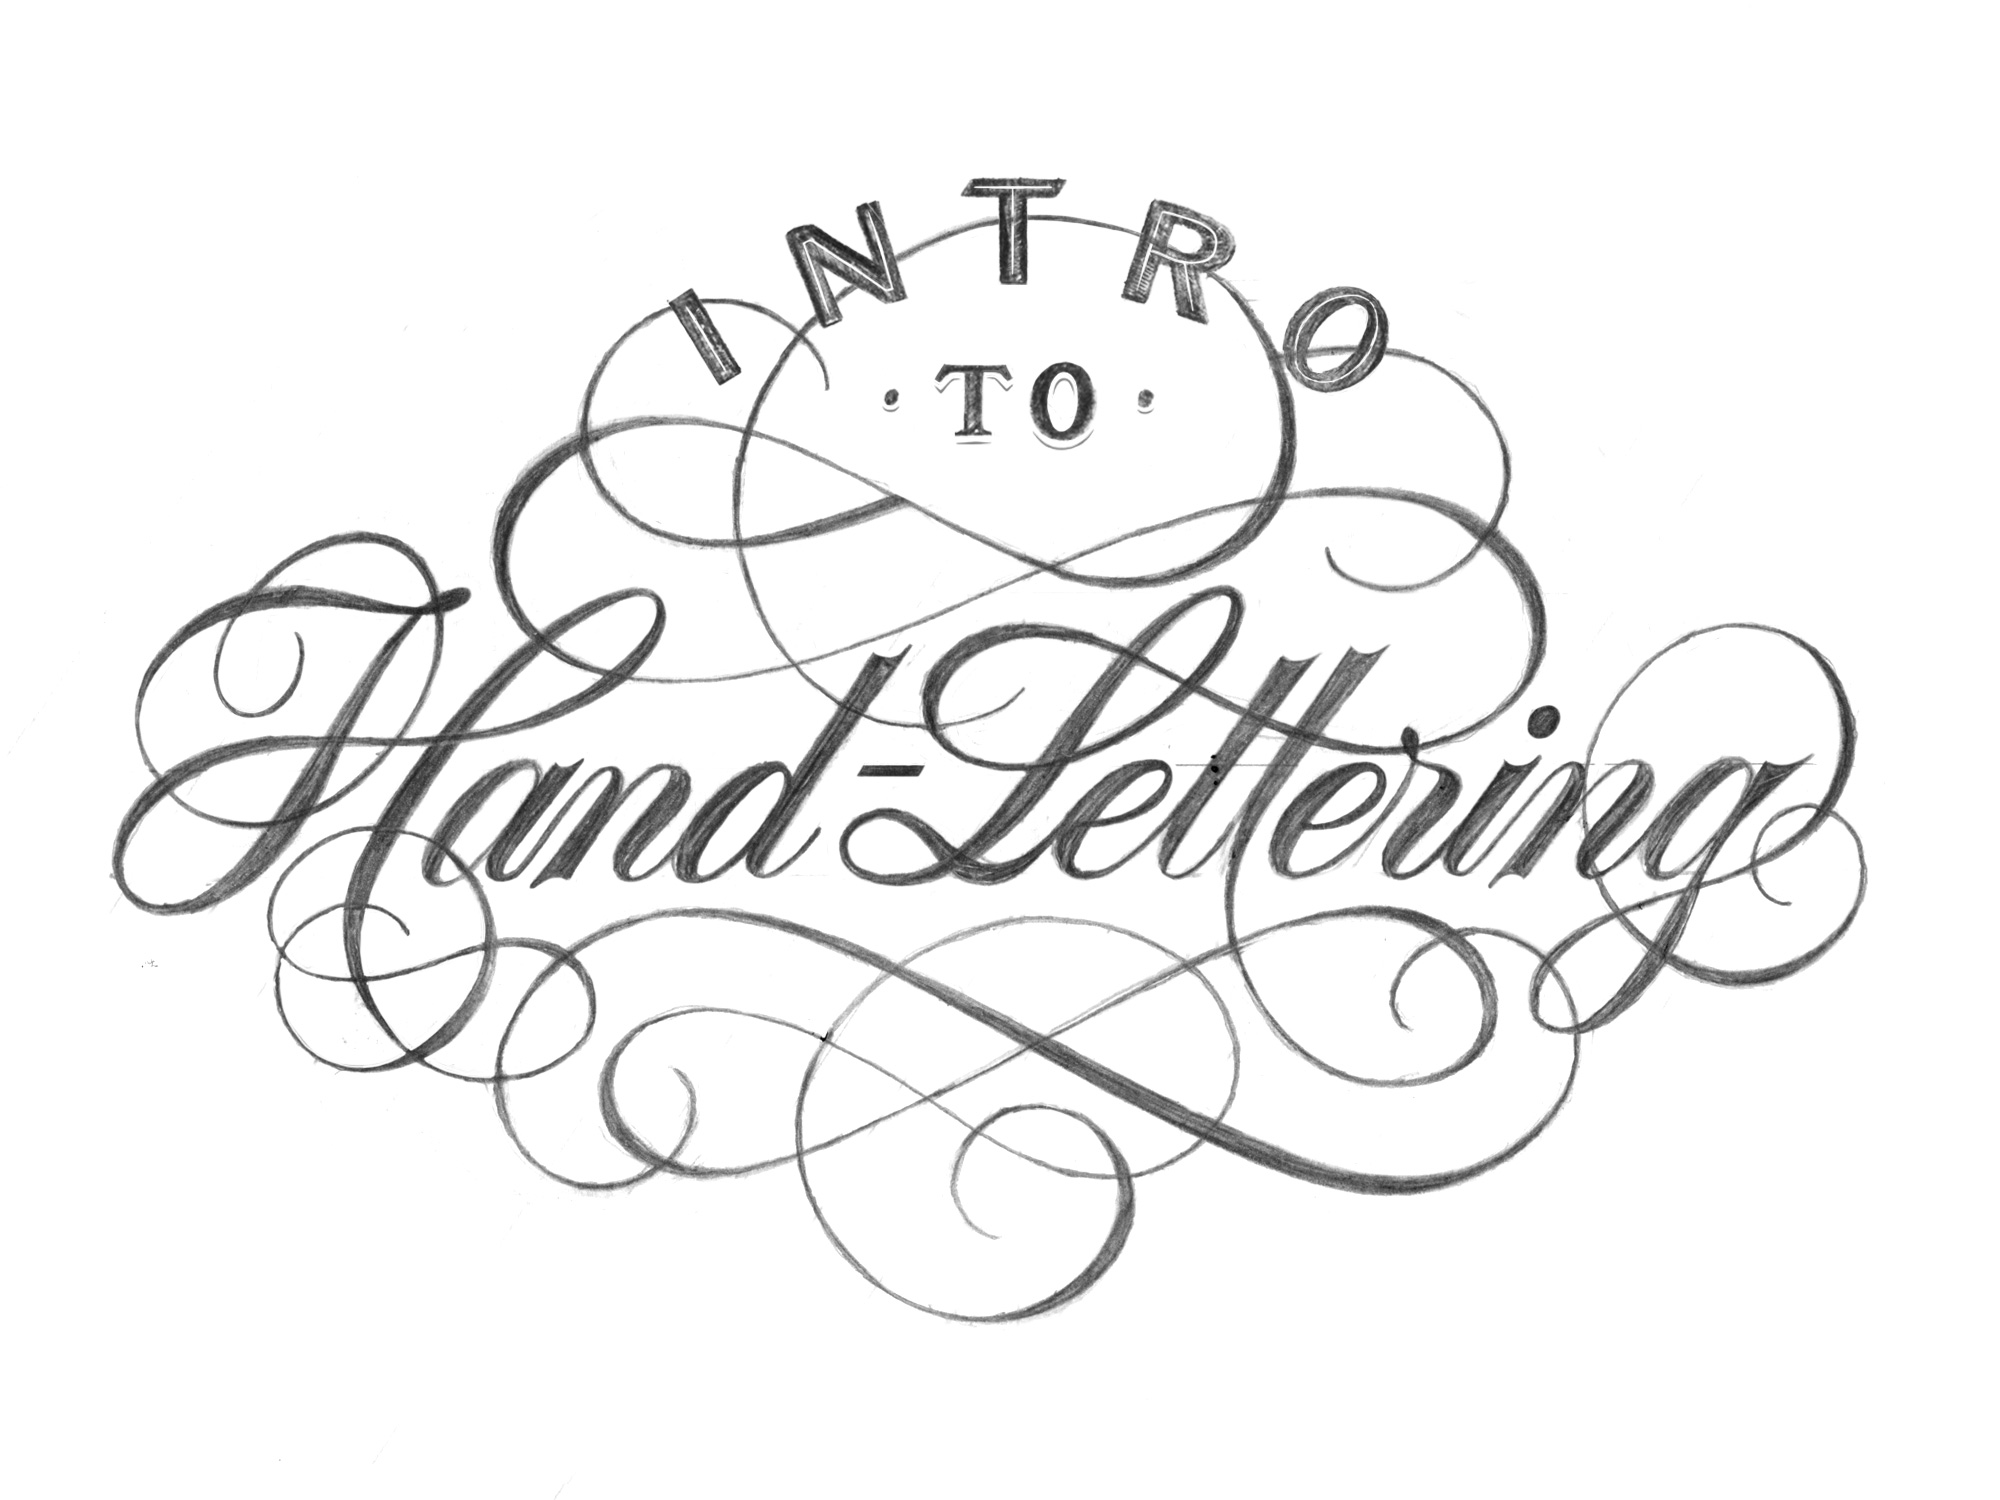 2000x1500 Intro To Hand Lettering Pies Brand